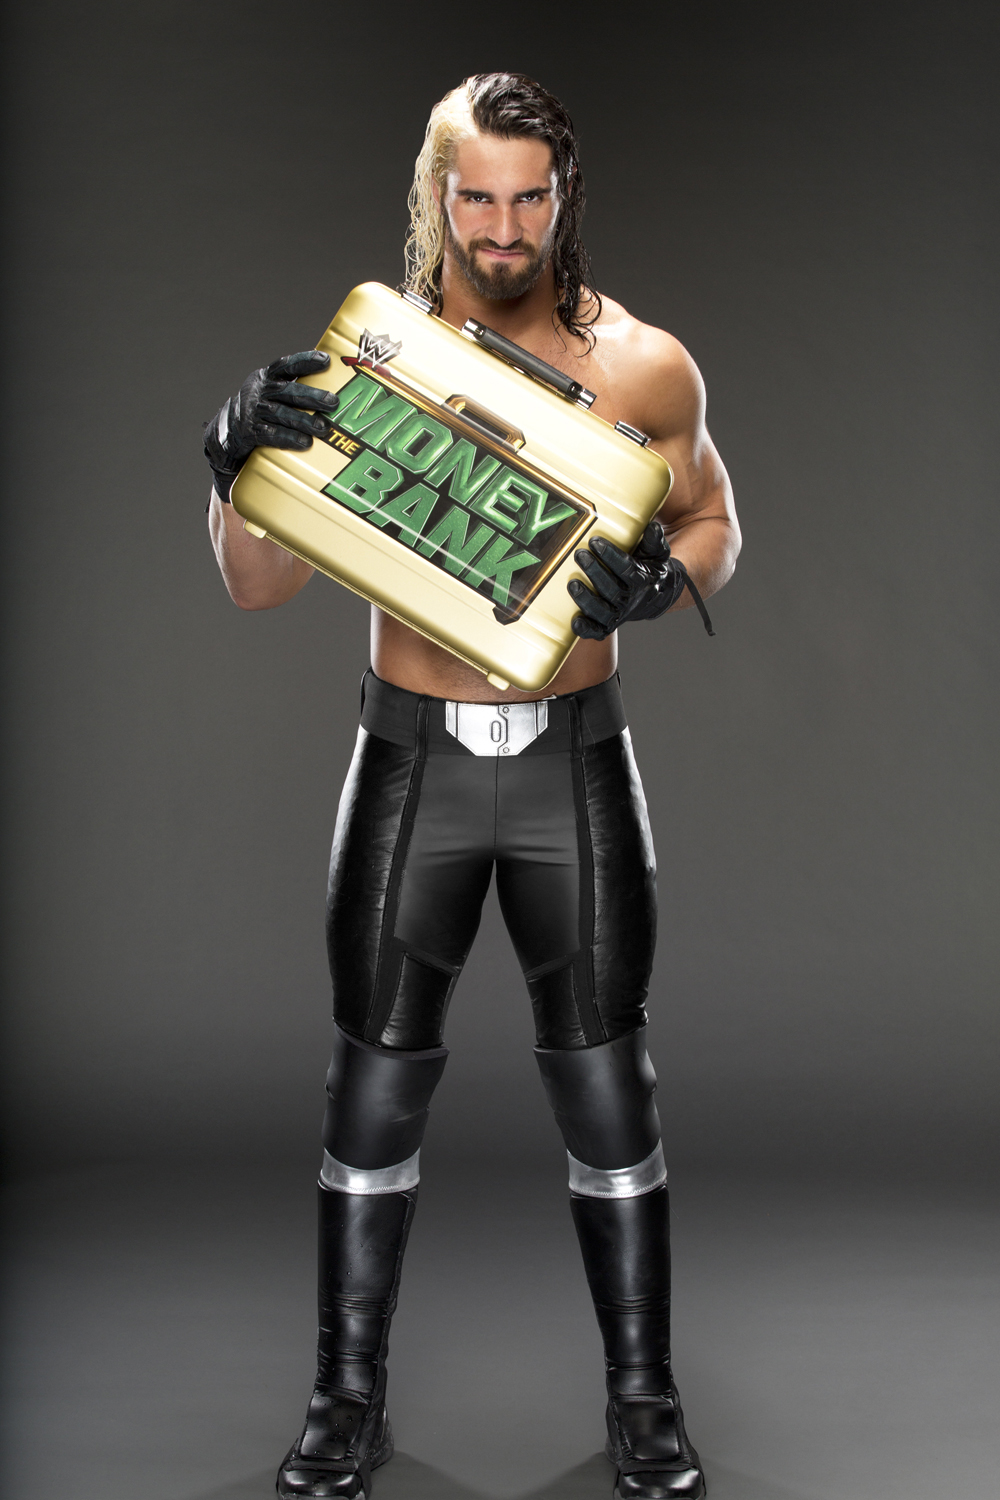 Wwe S The Architect Seth Rollins Is Building A Better